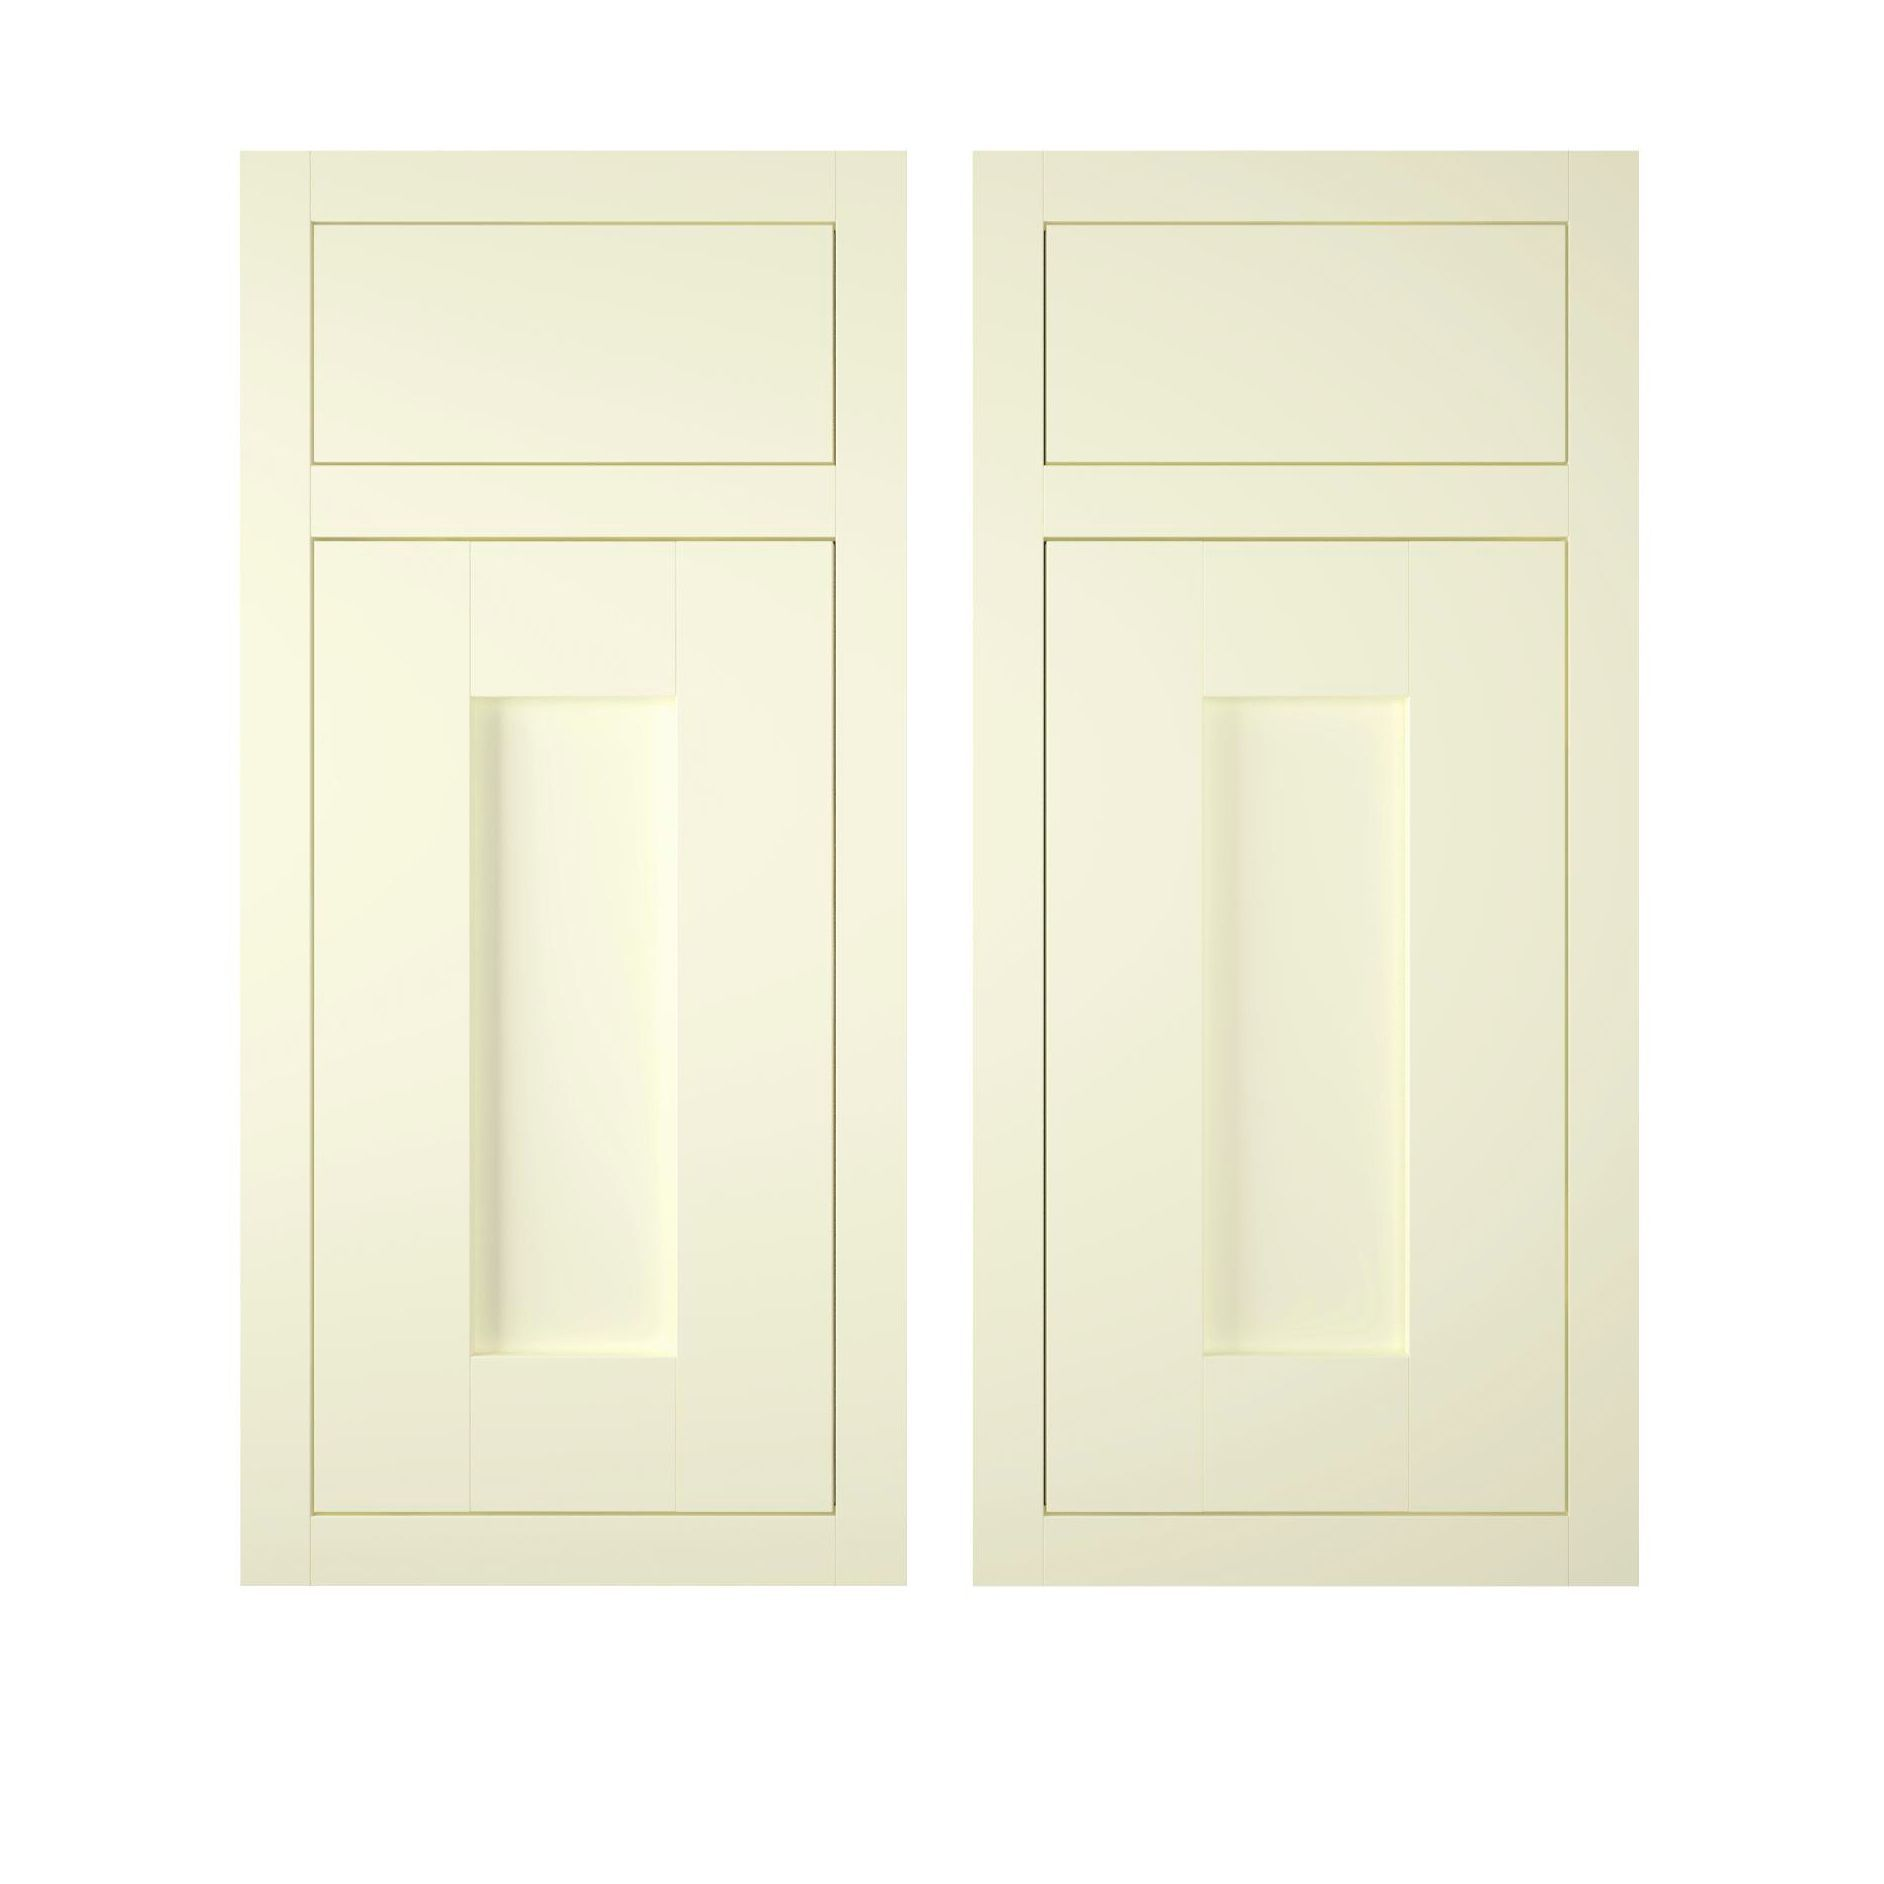 It kitchens chilton white country style corner base door for Country style kitchen doors